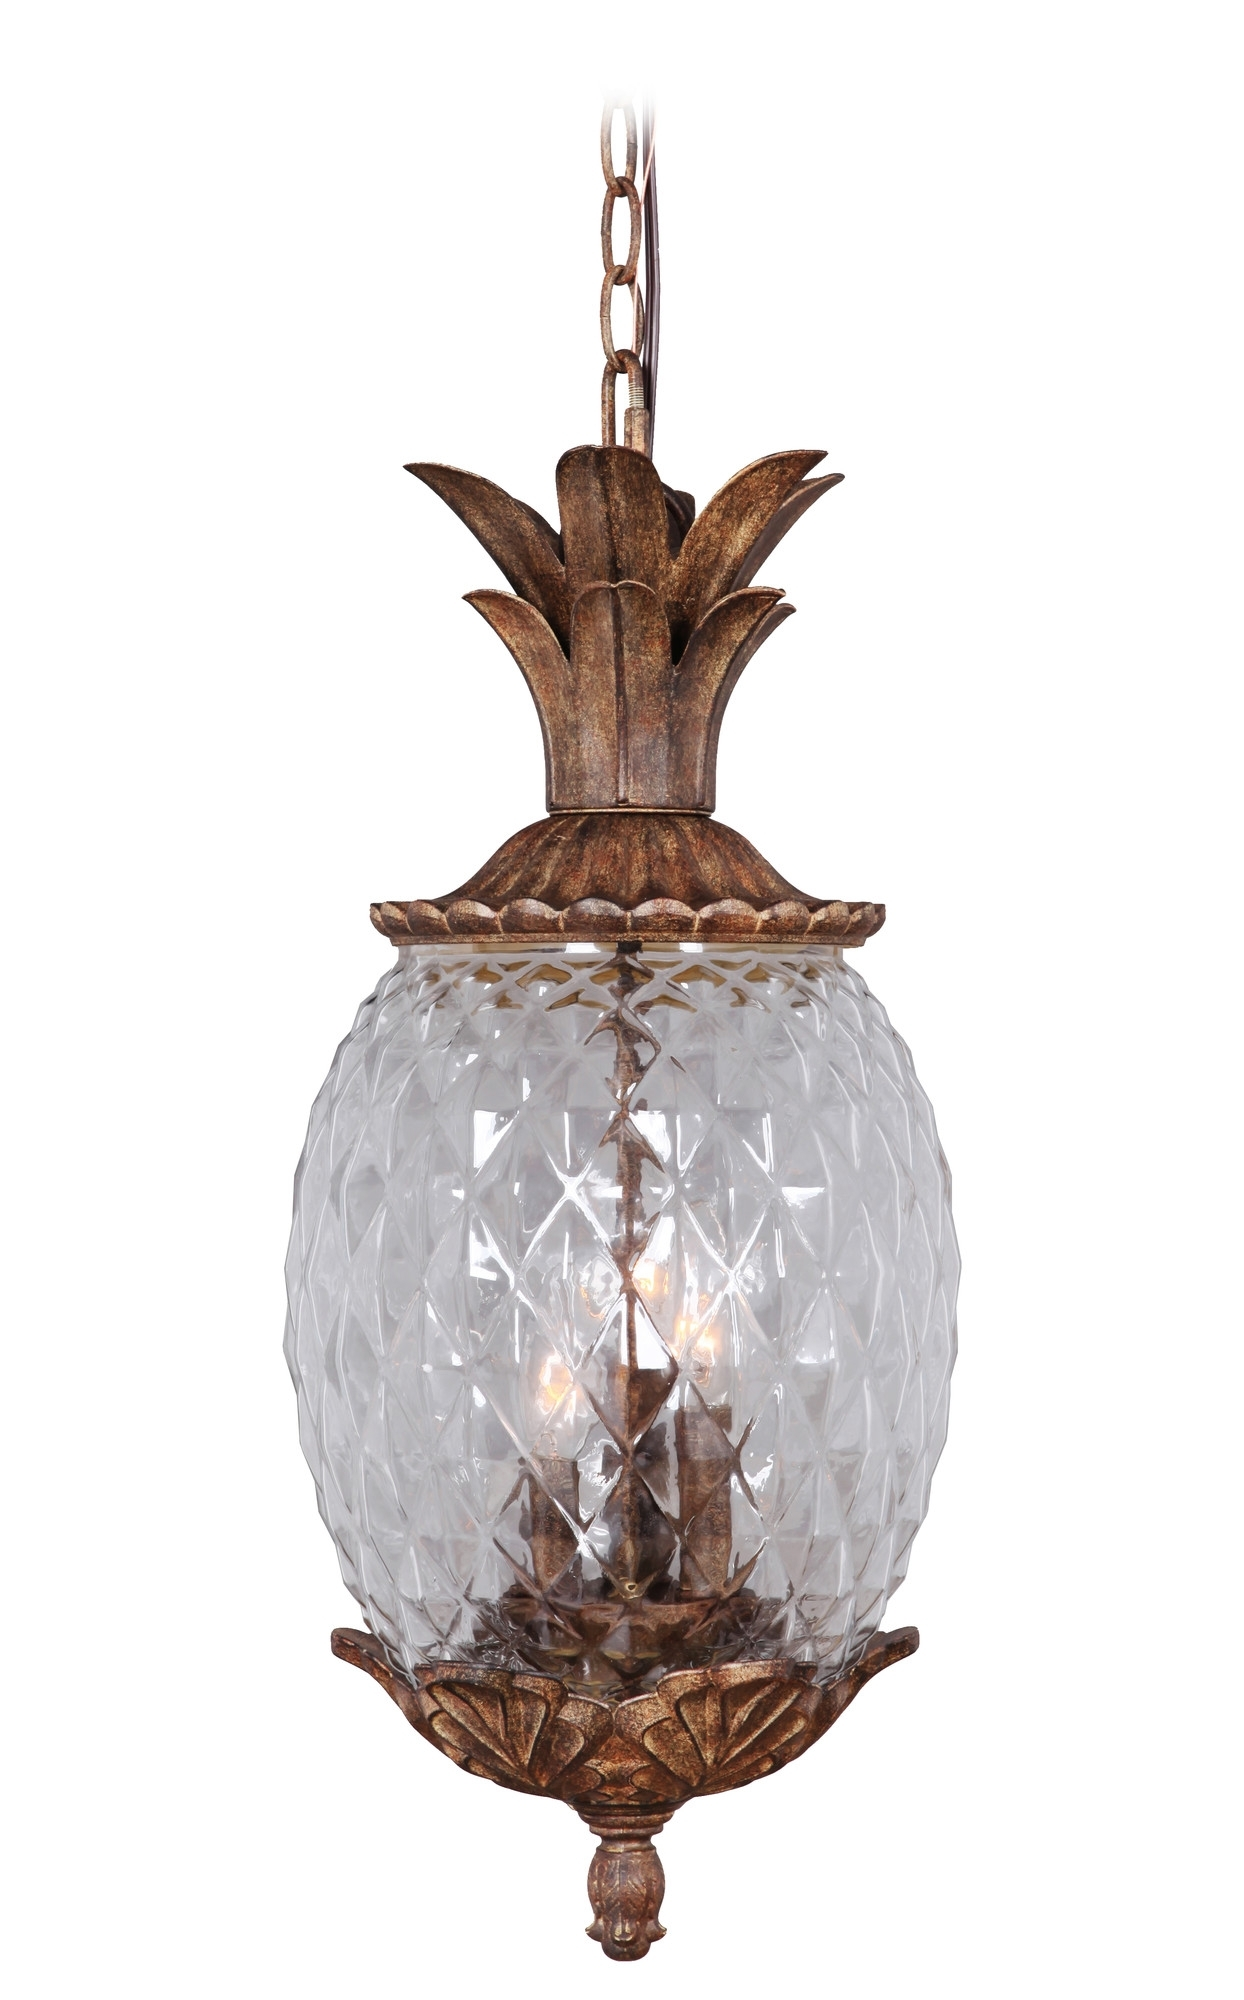 Marianahome Pineapple 3 Light Pendant & Reviews | Wayfair | Lighting Pertaining To Outdoor And Garden String Lights At Wayfair (#7 of 15)